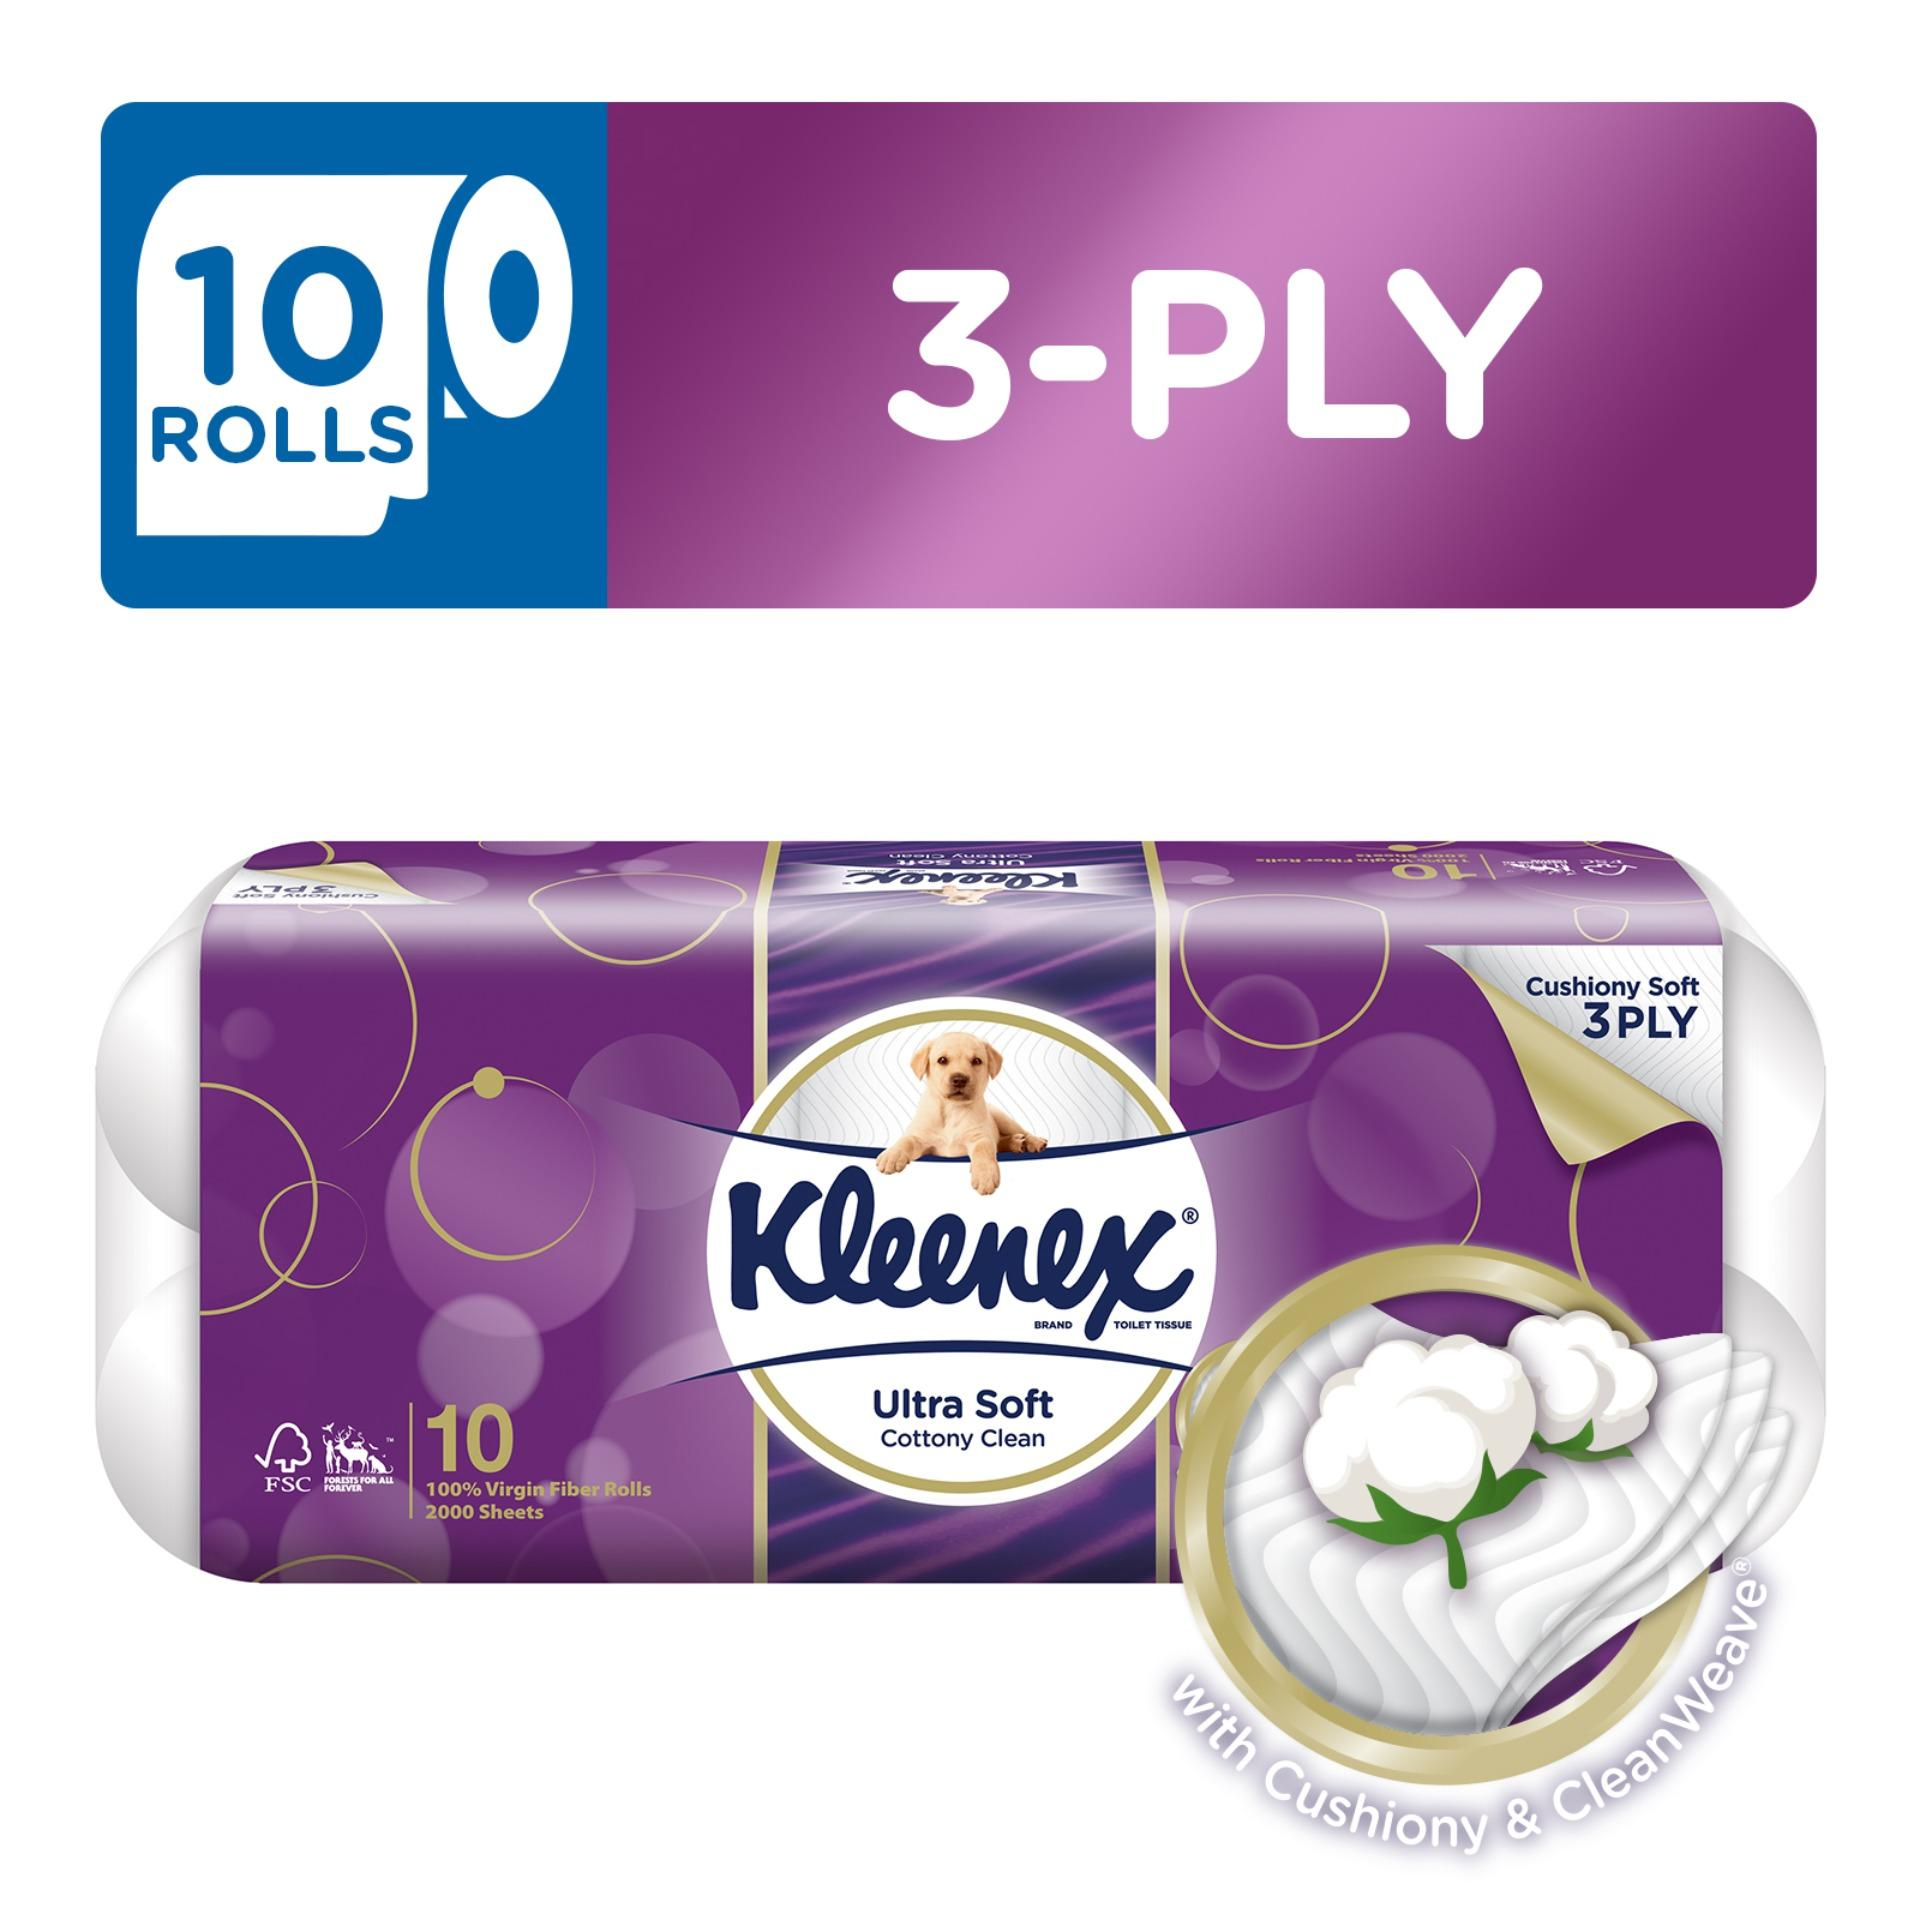 Kleenex Ultra Soft Cottony Clean Toilet Tissue 10x200sheets By Kimberly Clark Official Store.